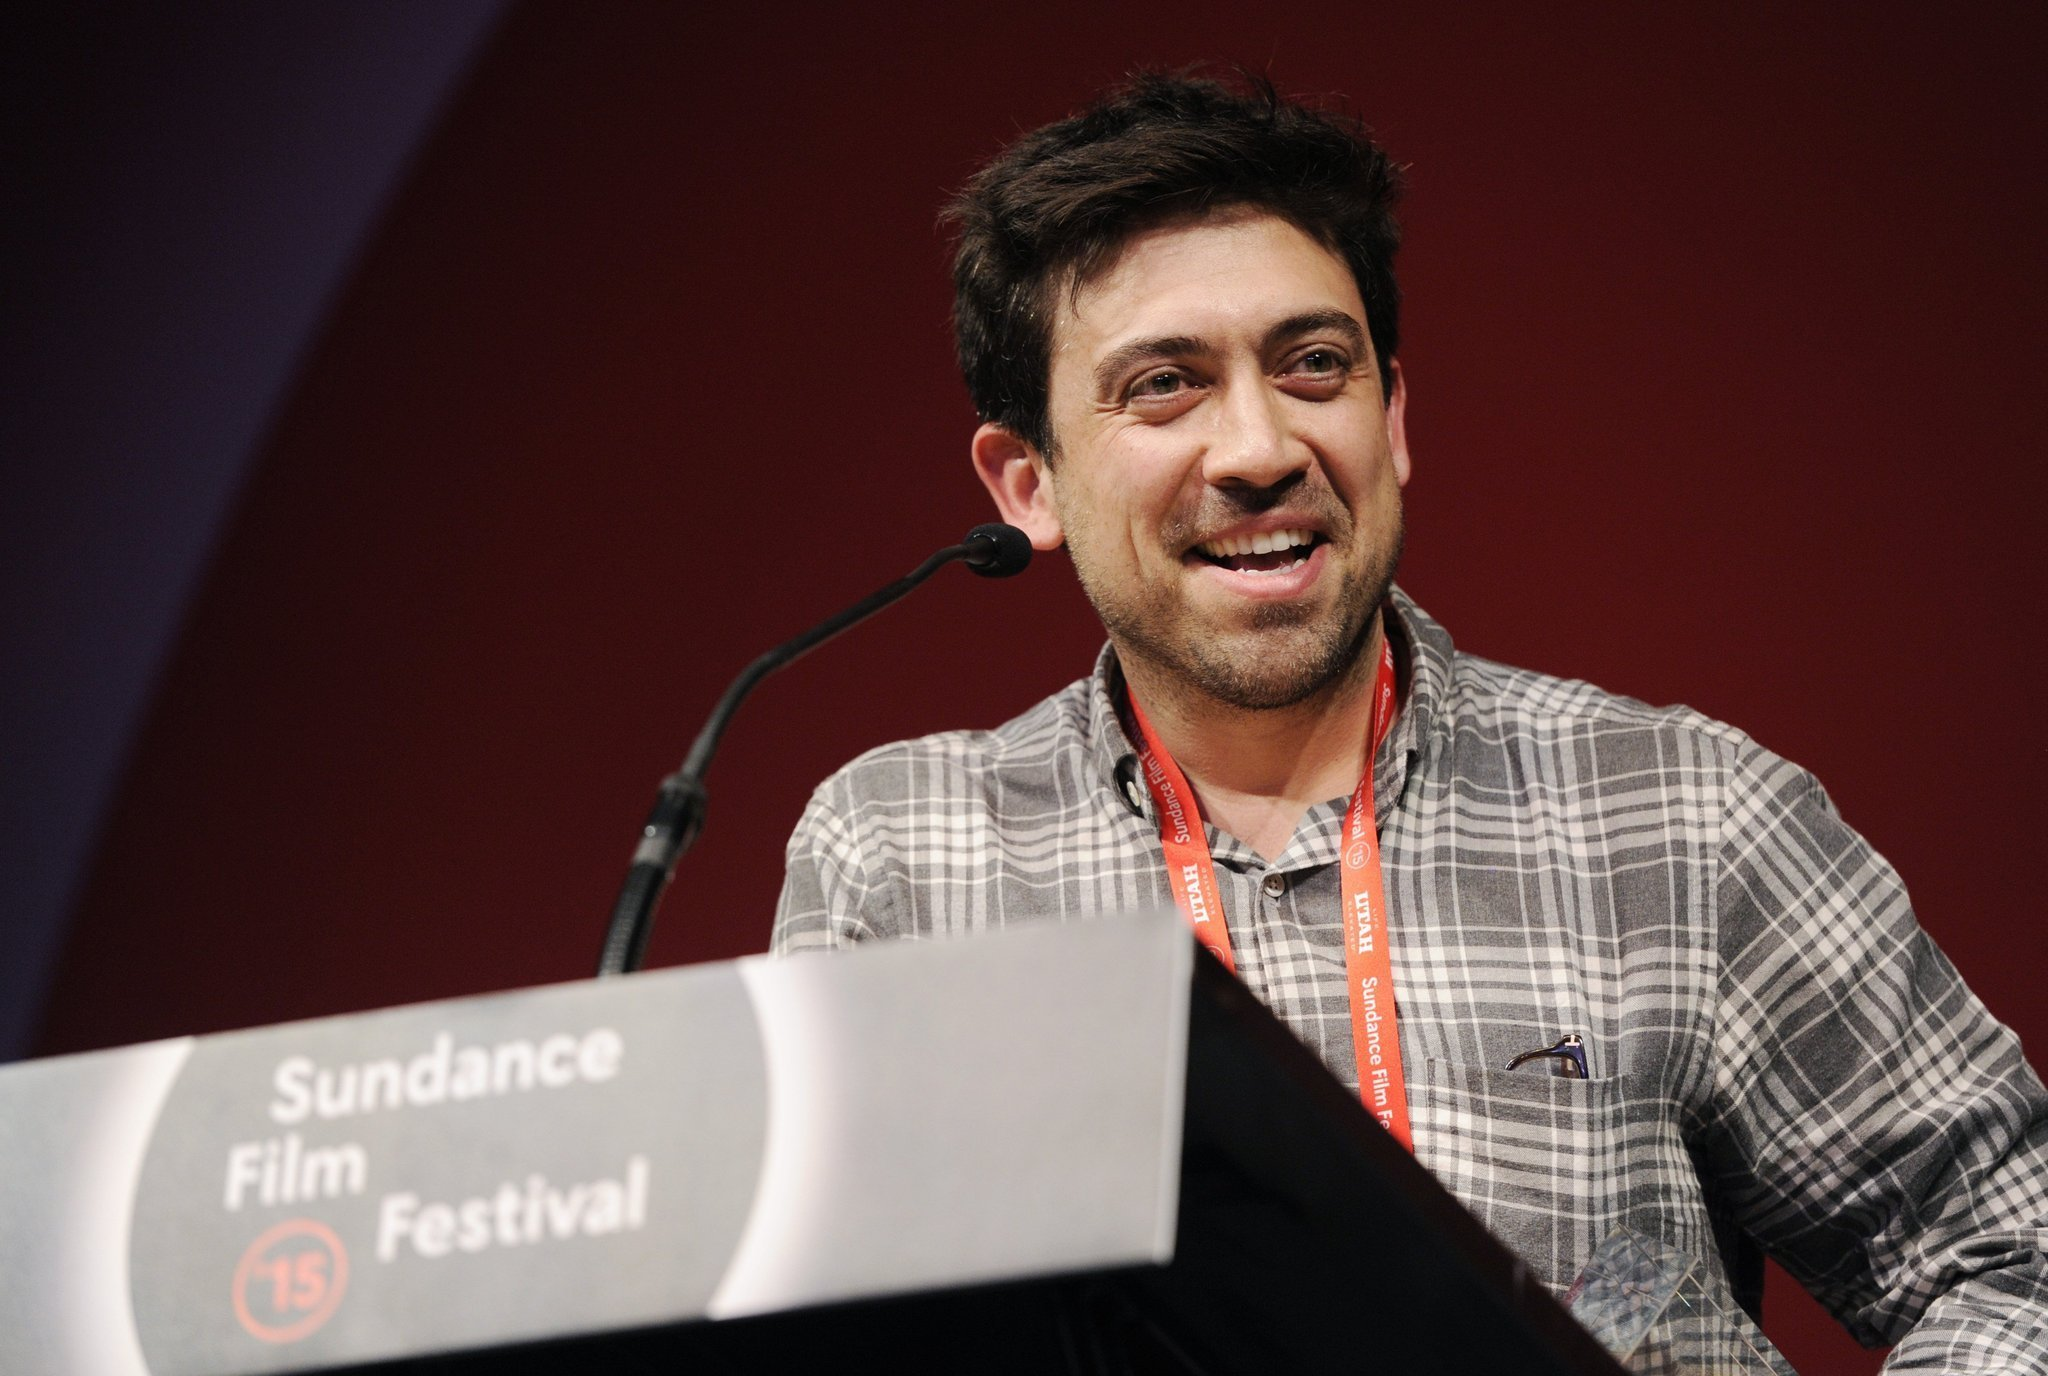 Latino Directors Totally Owned the Sundance Film Festival Awards Ceremony This Weekend